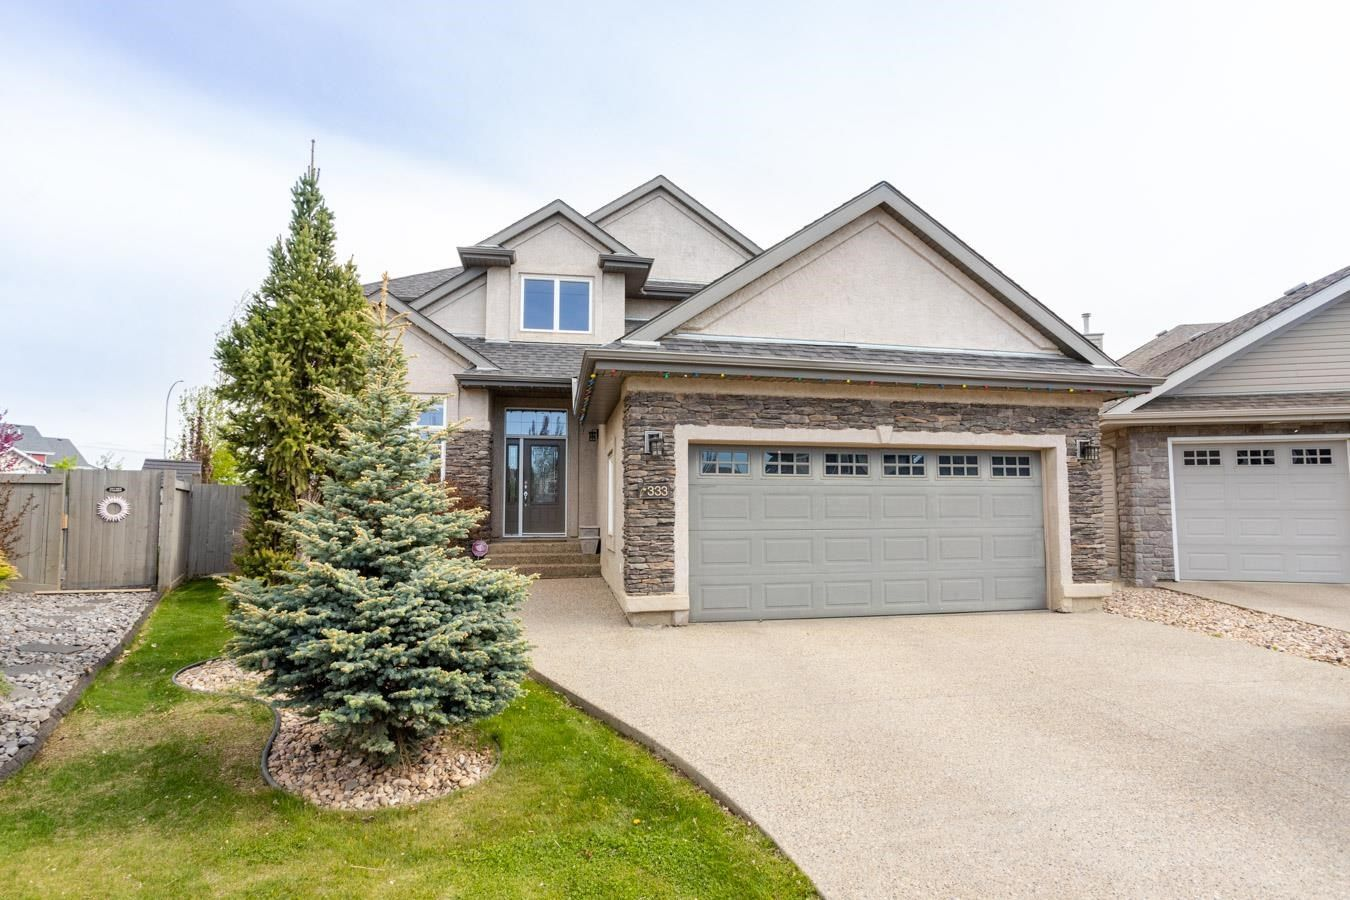 Main Photo: 333 CALLAGHAN Close in Edmonton: Zone 55 House for sale : MLS®# E4246817